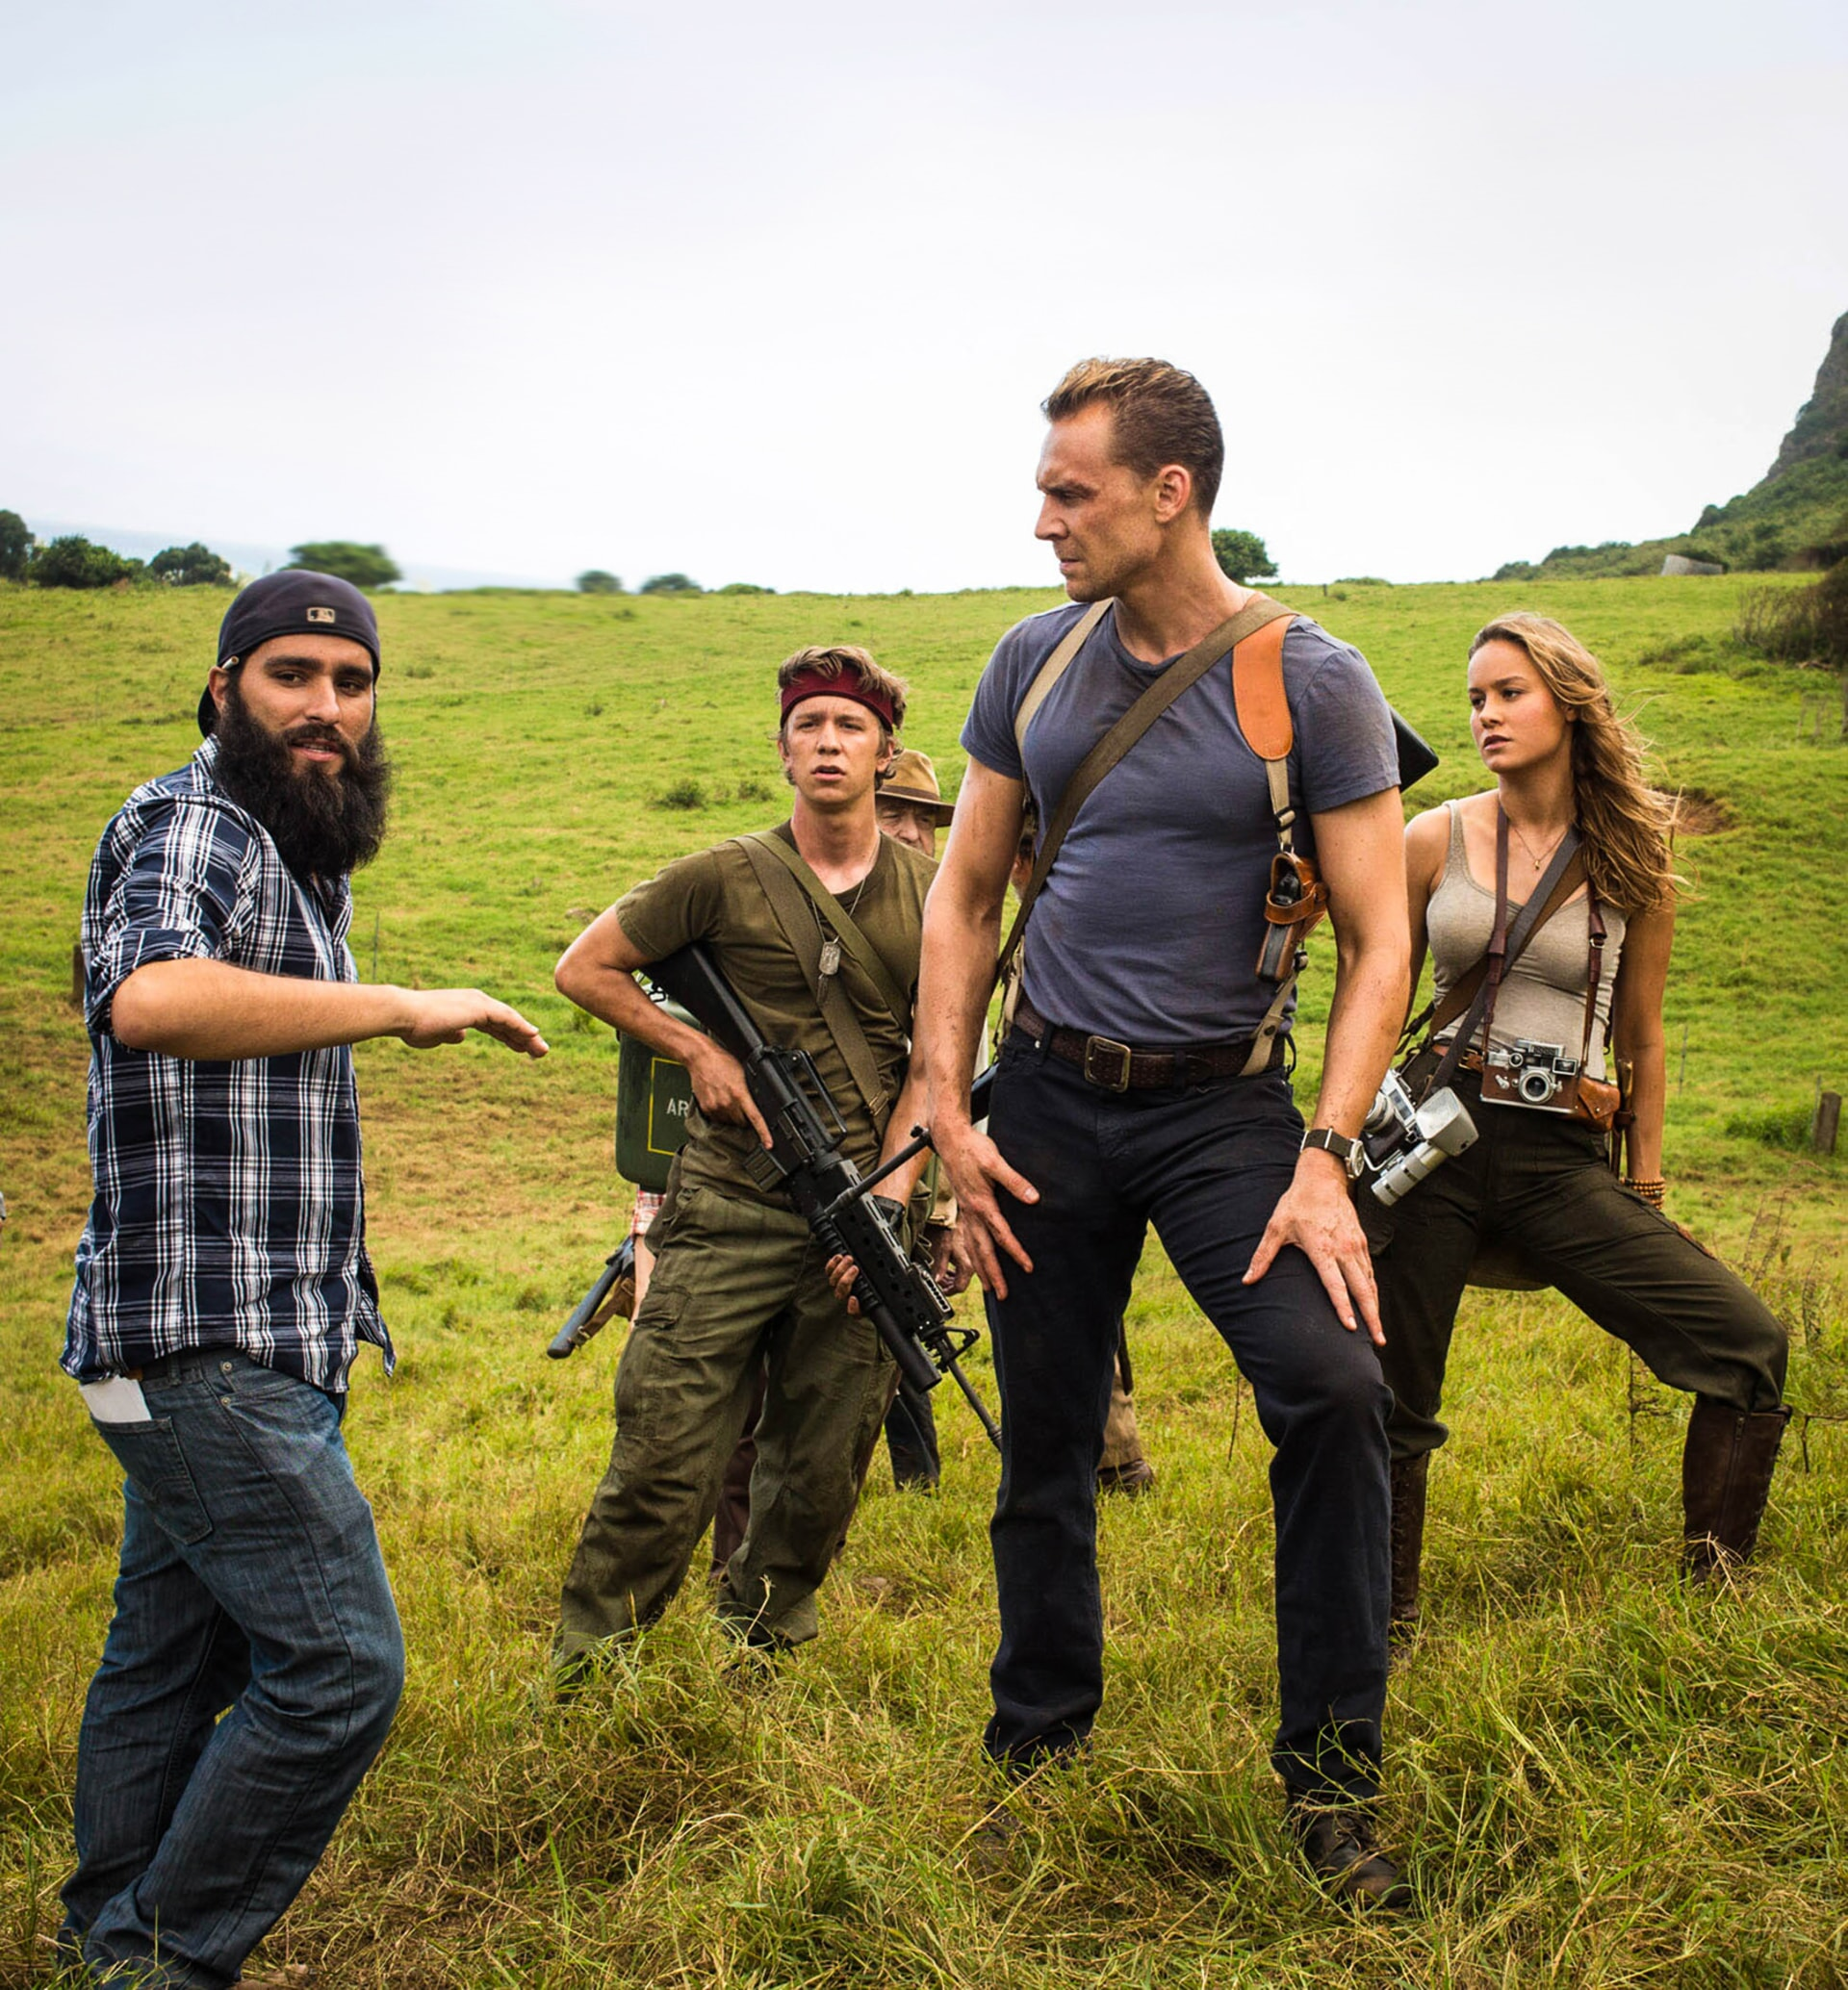 """Director JORDAN VOGT-ROBERTS, THOMAS MANN, TOM HIDDLESTON and BRIE LARSON on the set of Warner Bros. Pictures, Legendary Pictures and Tencent Pictures' action adventure """"KONG: SKULL ISLAND,"""" a Warner Bros. Pictures release."""